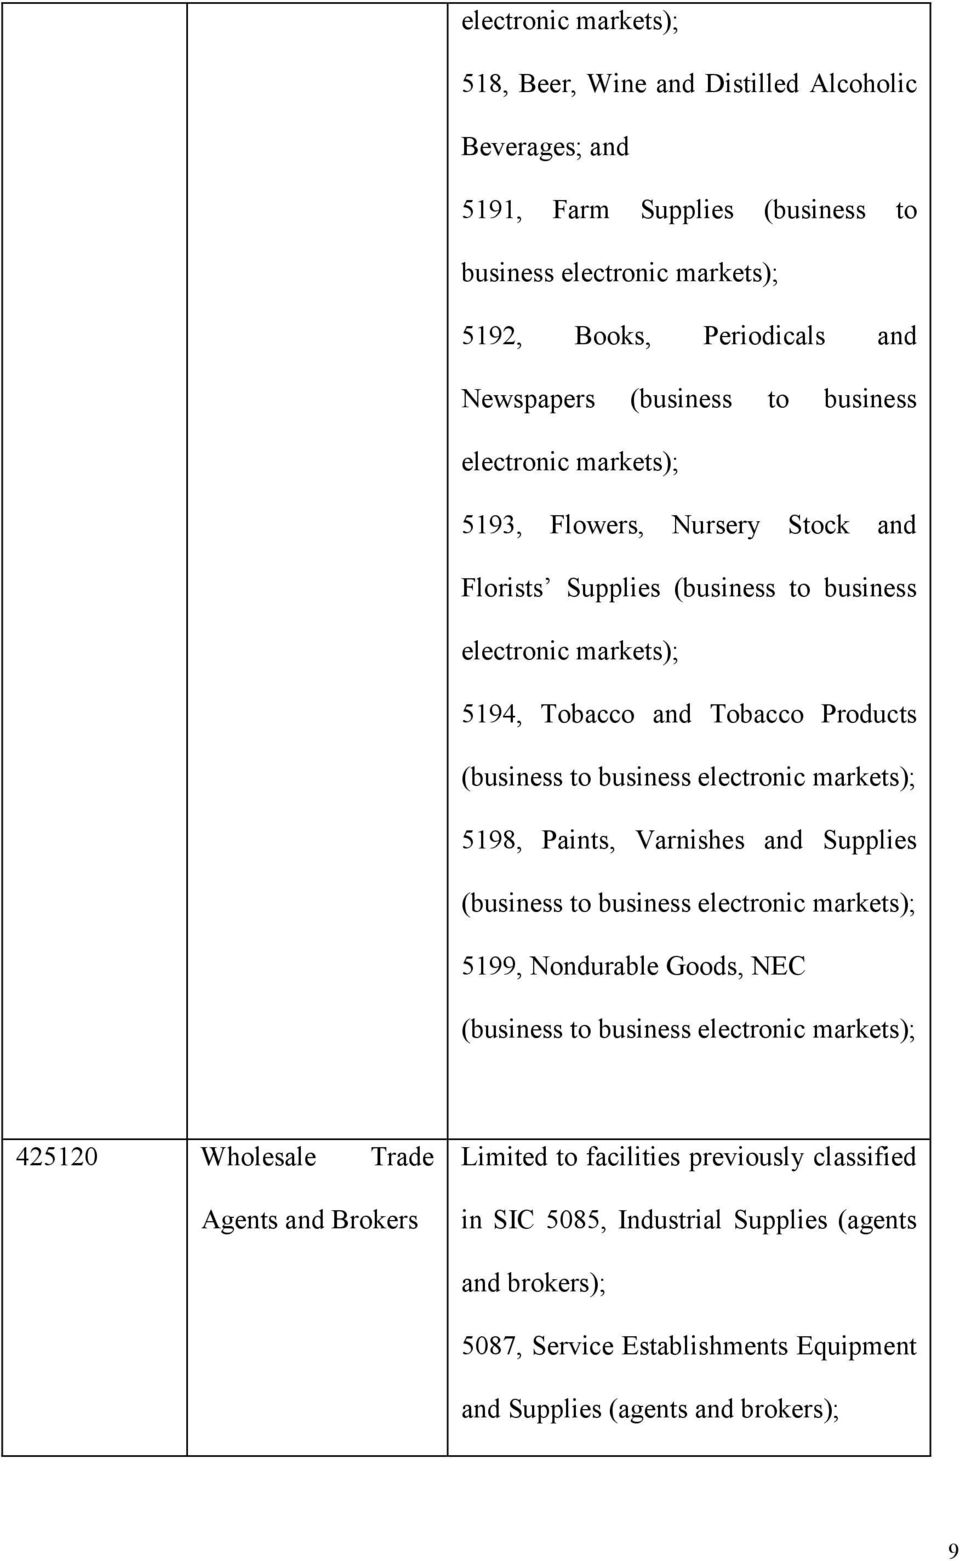 (business to business electronic markets); 5198, Paints, Varnishes Supplies (business to business electronic markets); 5199, Nondurable Goods, NEC (business to business